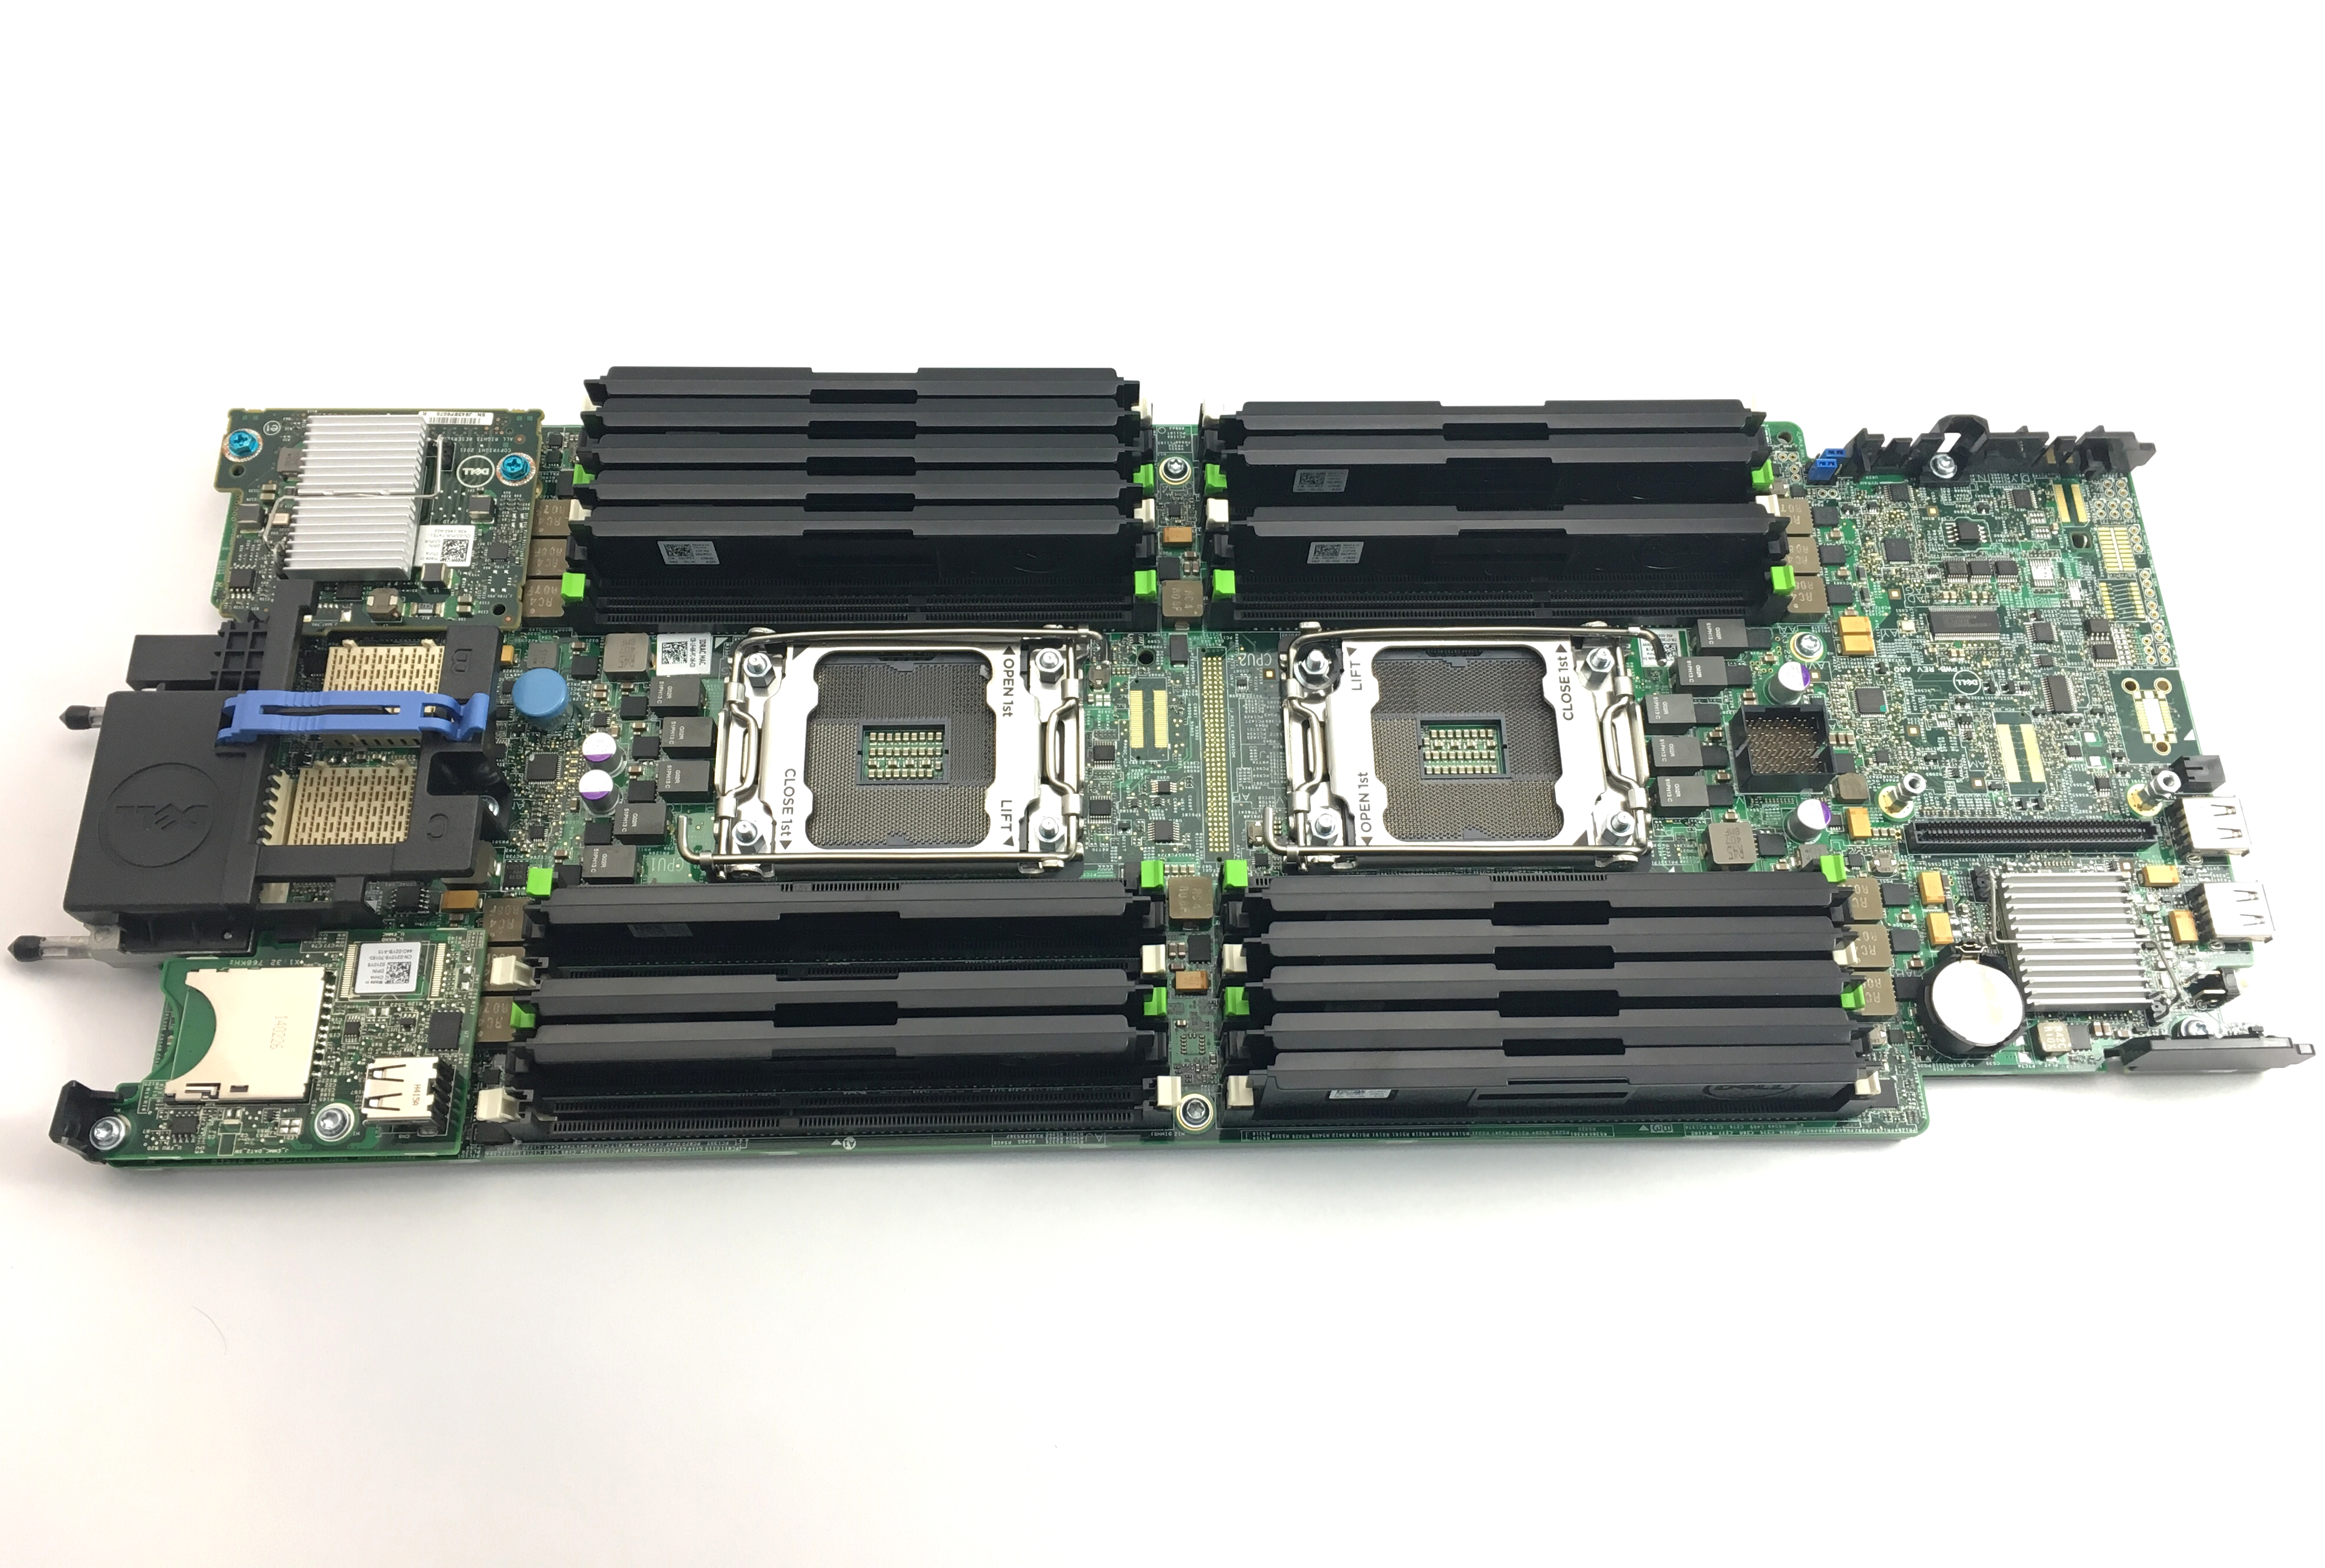 Dell Motherboard For PowerEdge M620 Blade Server (T36VK)